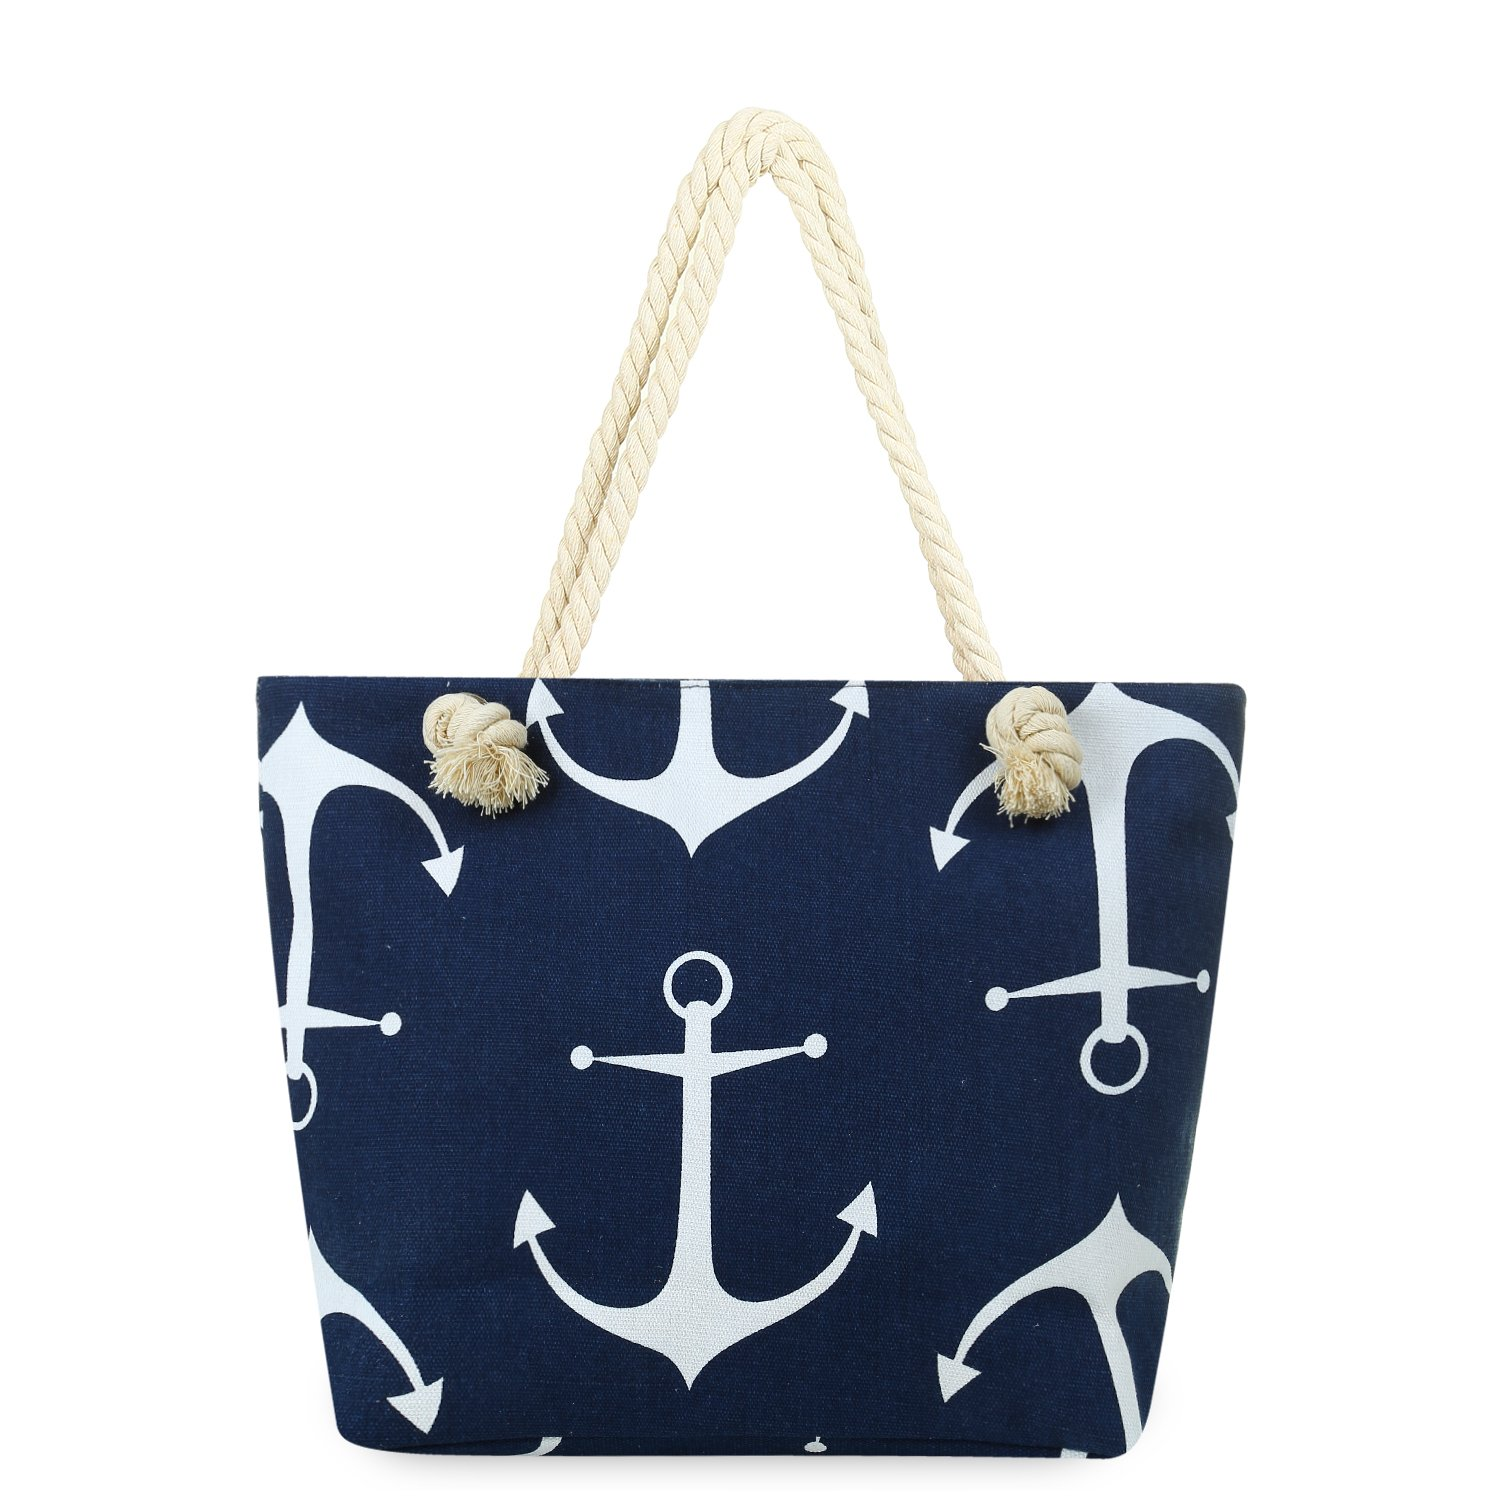 MISS FANTASY Beach Bag Anchor Print Beach Tote Large Canvas Summer Tote with Zipper Good for Beach and Travel (Navy Blue)